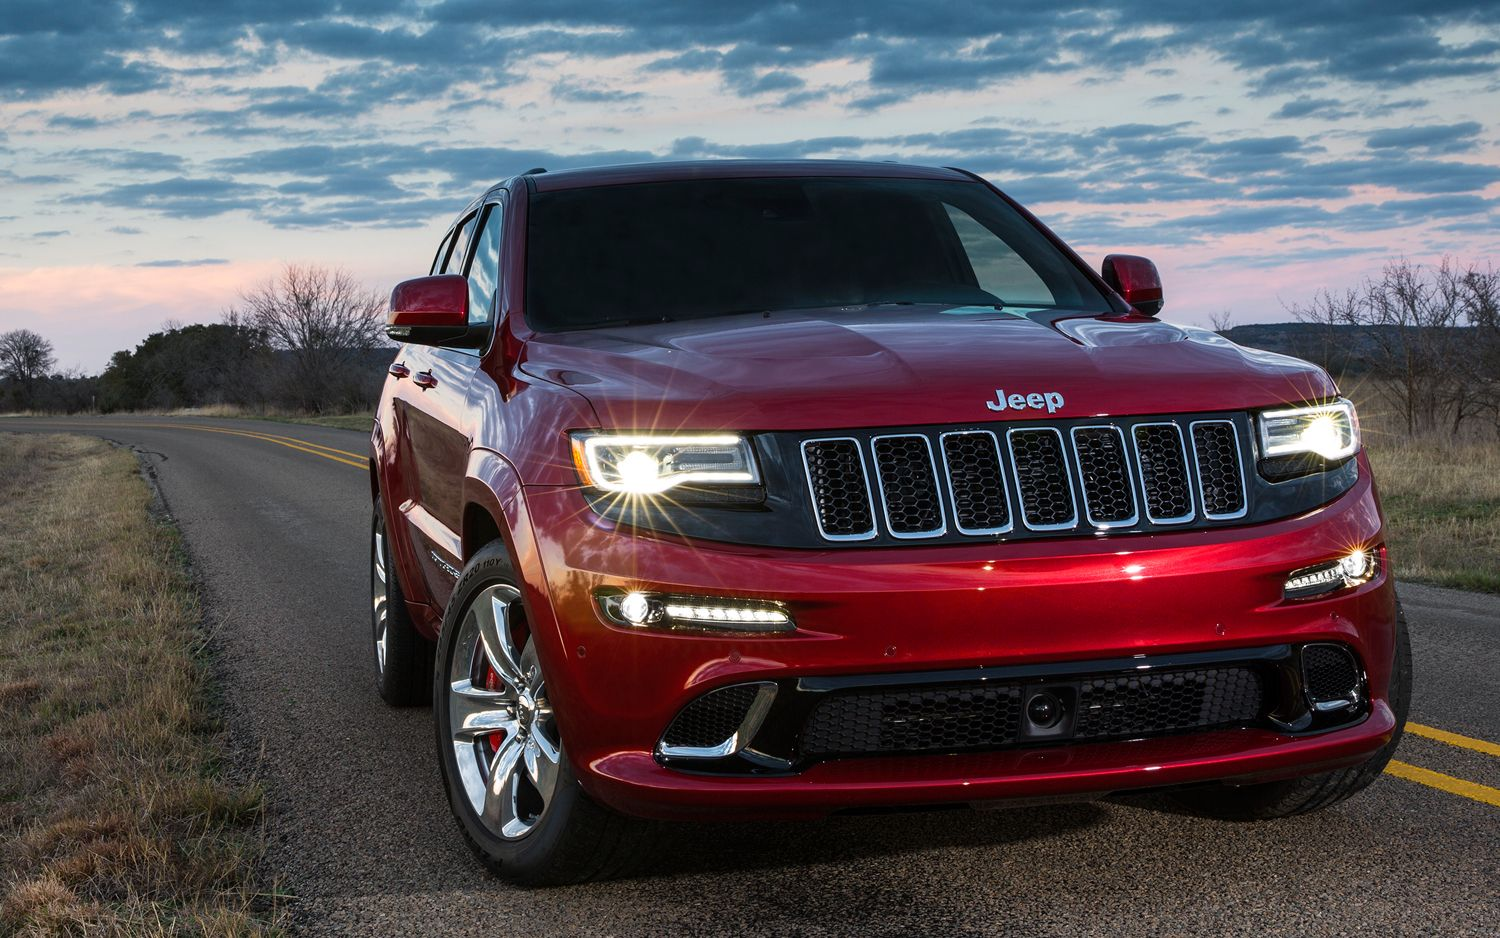 Unrivaled The Grand Cherokee Sets Extraordinary Standards For Performance Luxury Jeep Grand Cherokee Jeep Grand Cherokee Srt 2014 Jeep Grand Cherokee